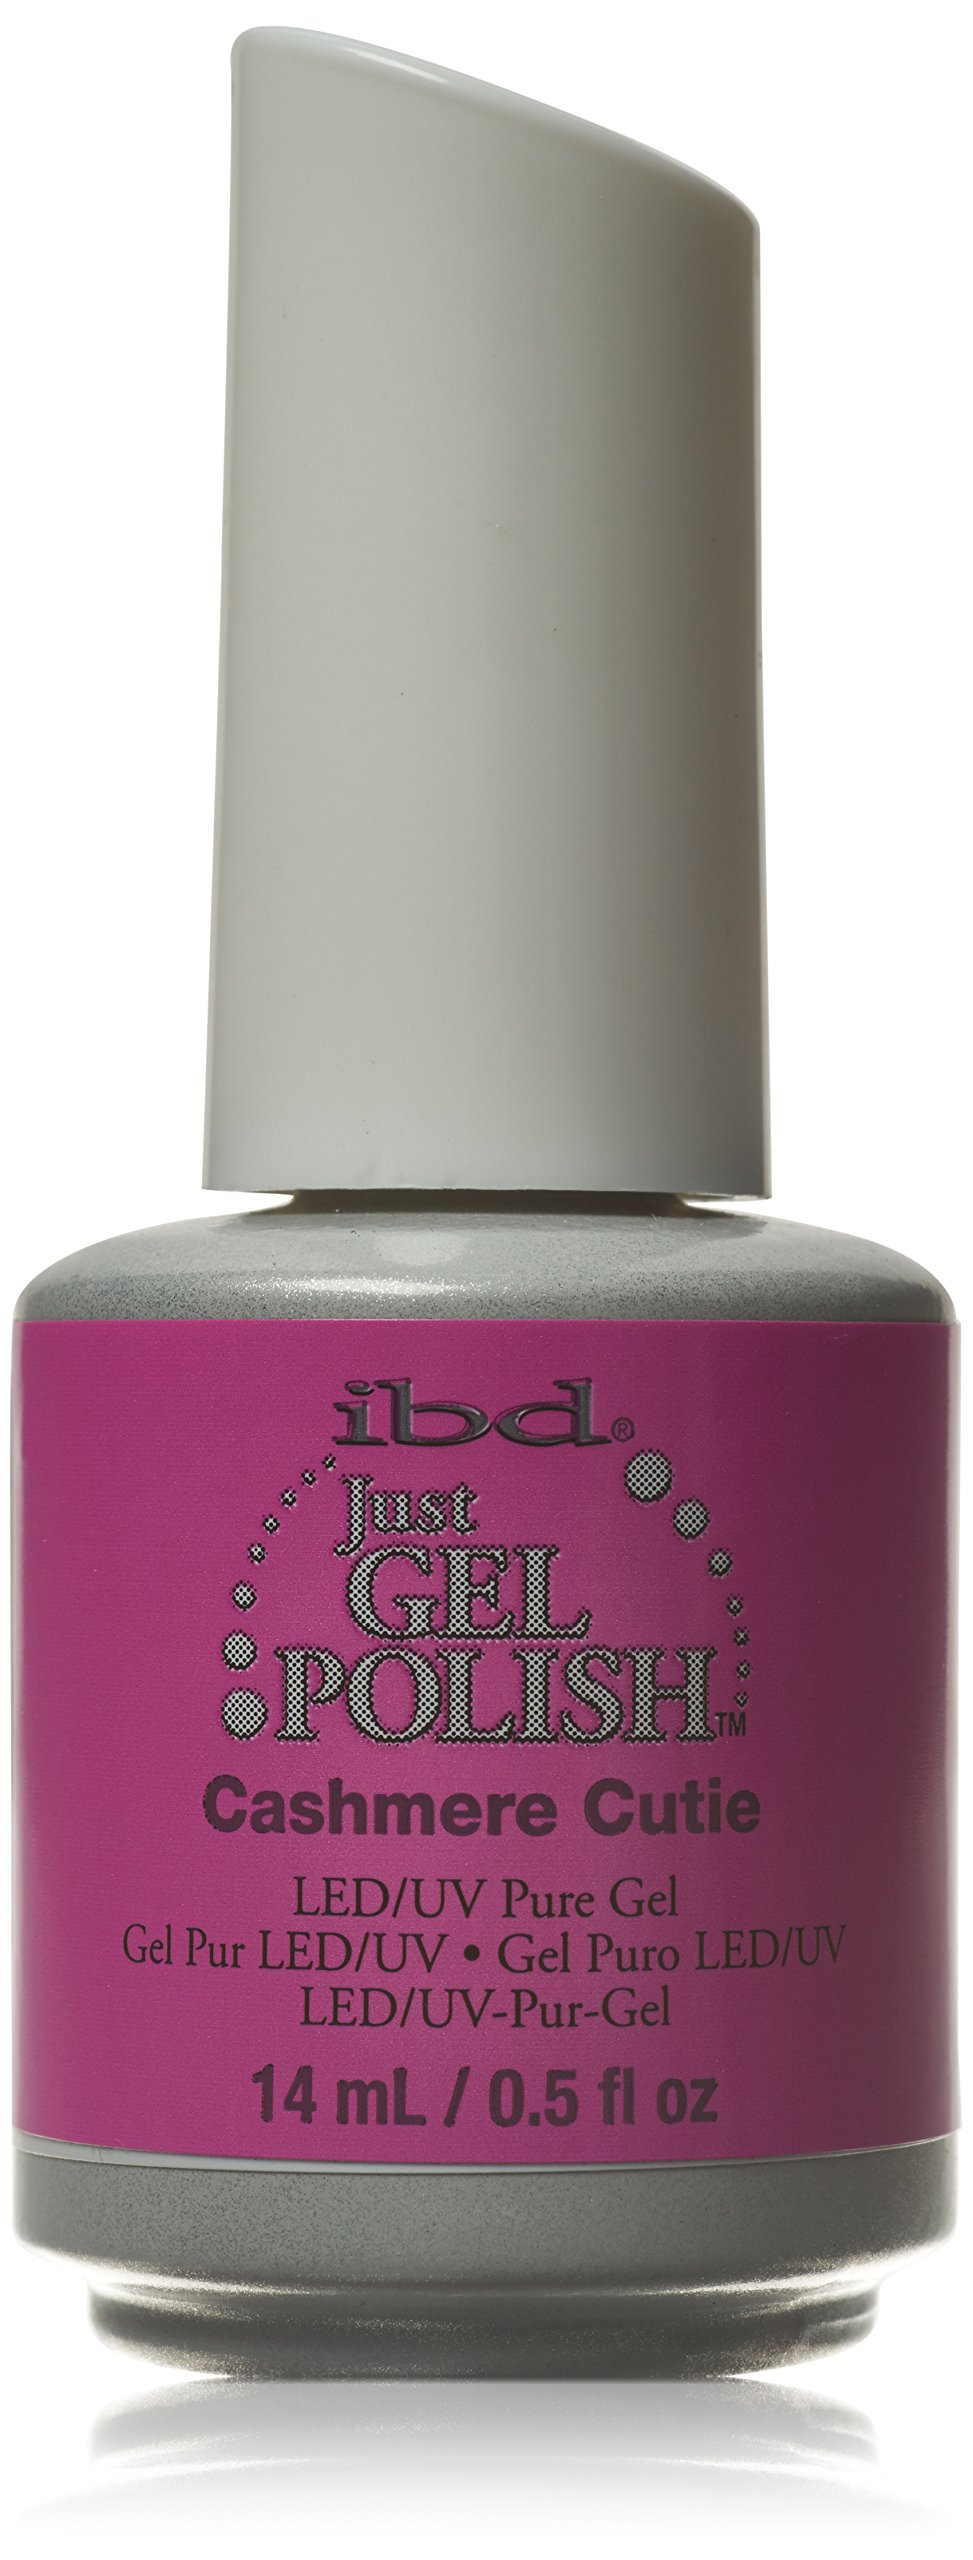 Home ibd just gel polish ibd just gel polish abracadabra - Ibd Just Gel Uv Led Gel Polish Social Lights Summer Collection 2014 All